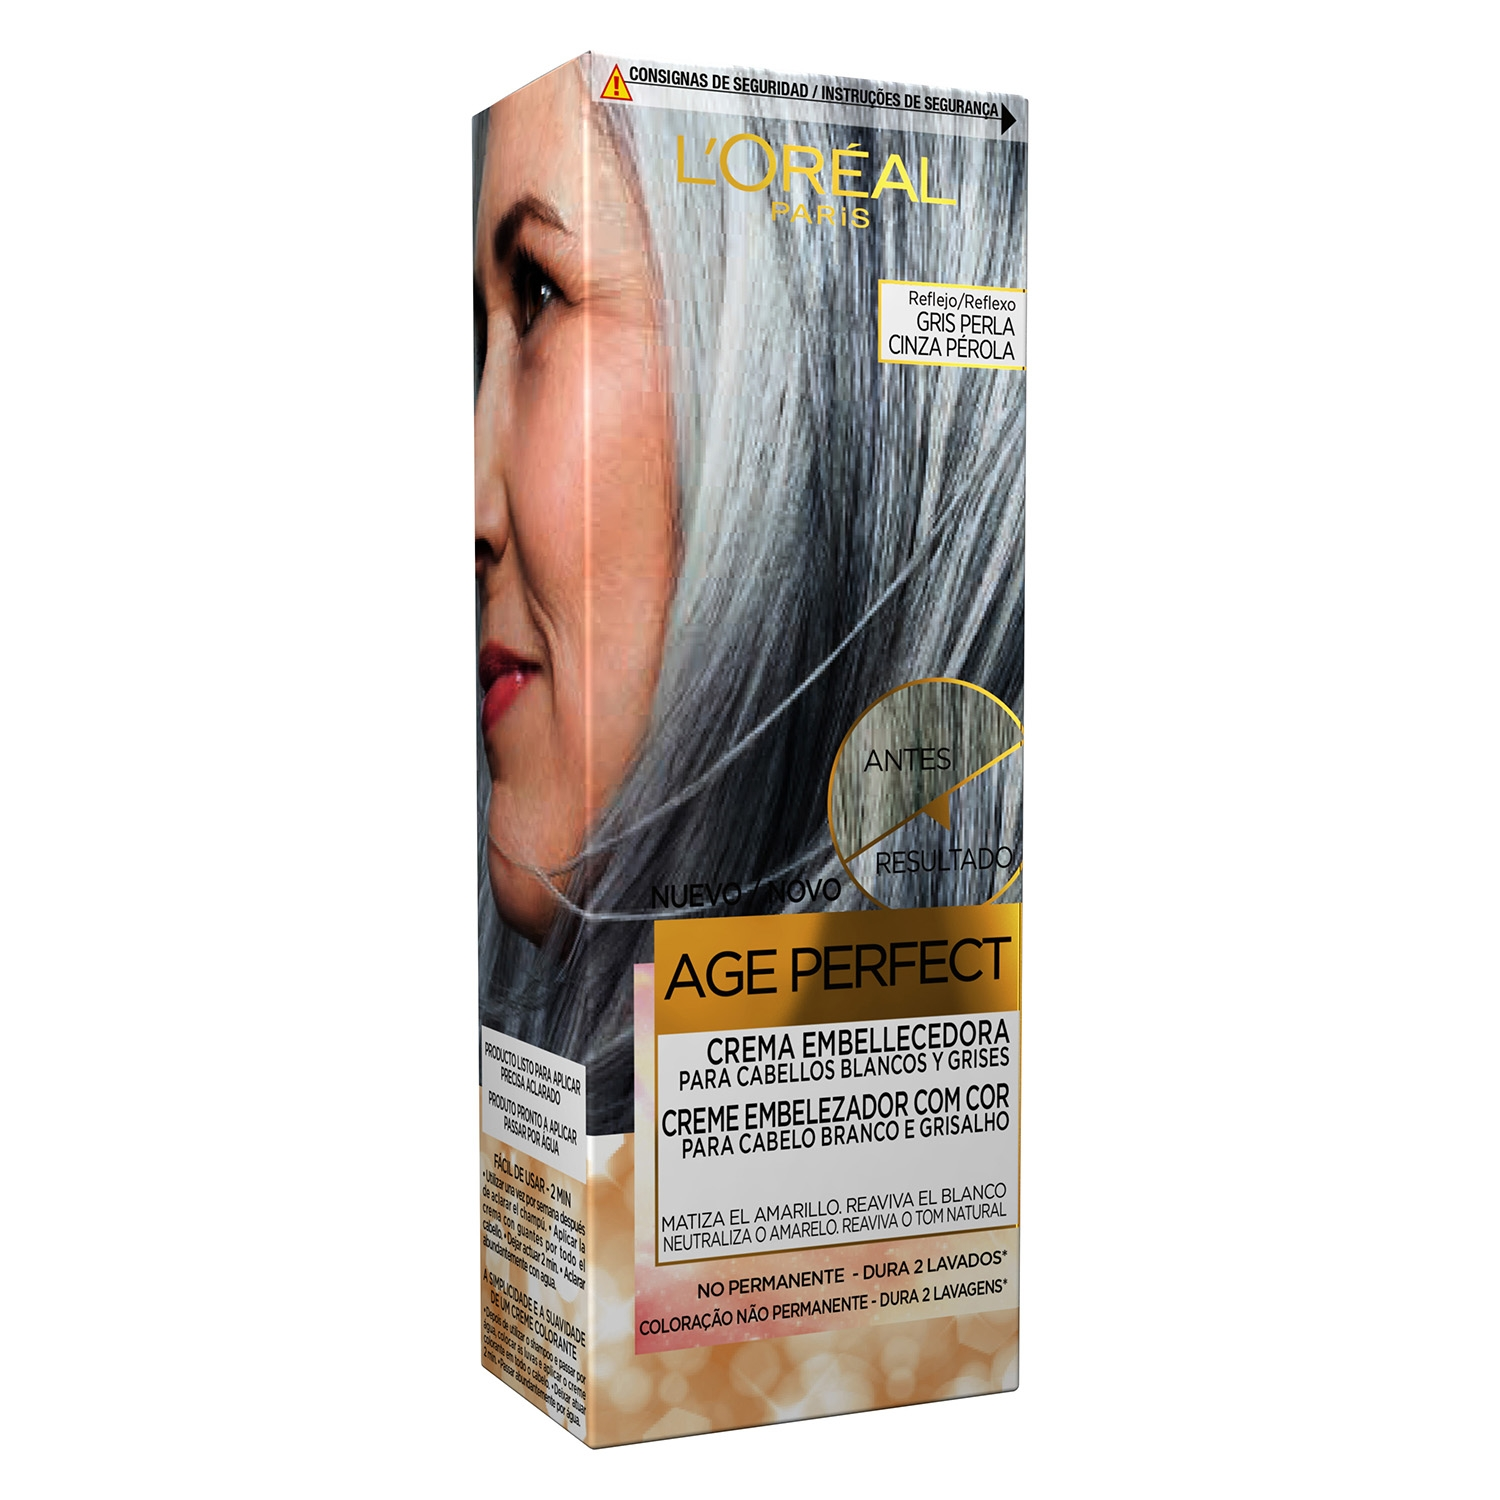 Crema embellecedora no permanente Age Perfect Gris Perla